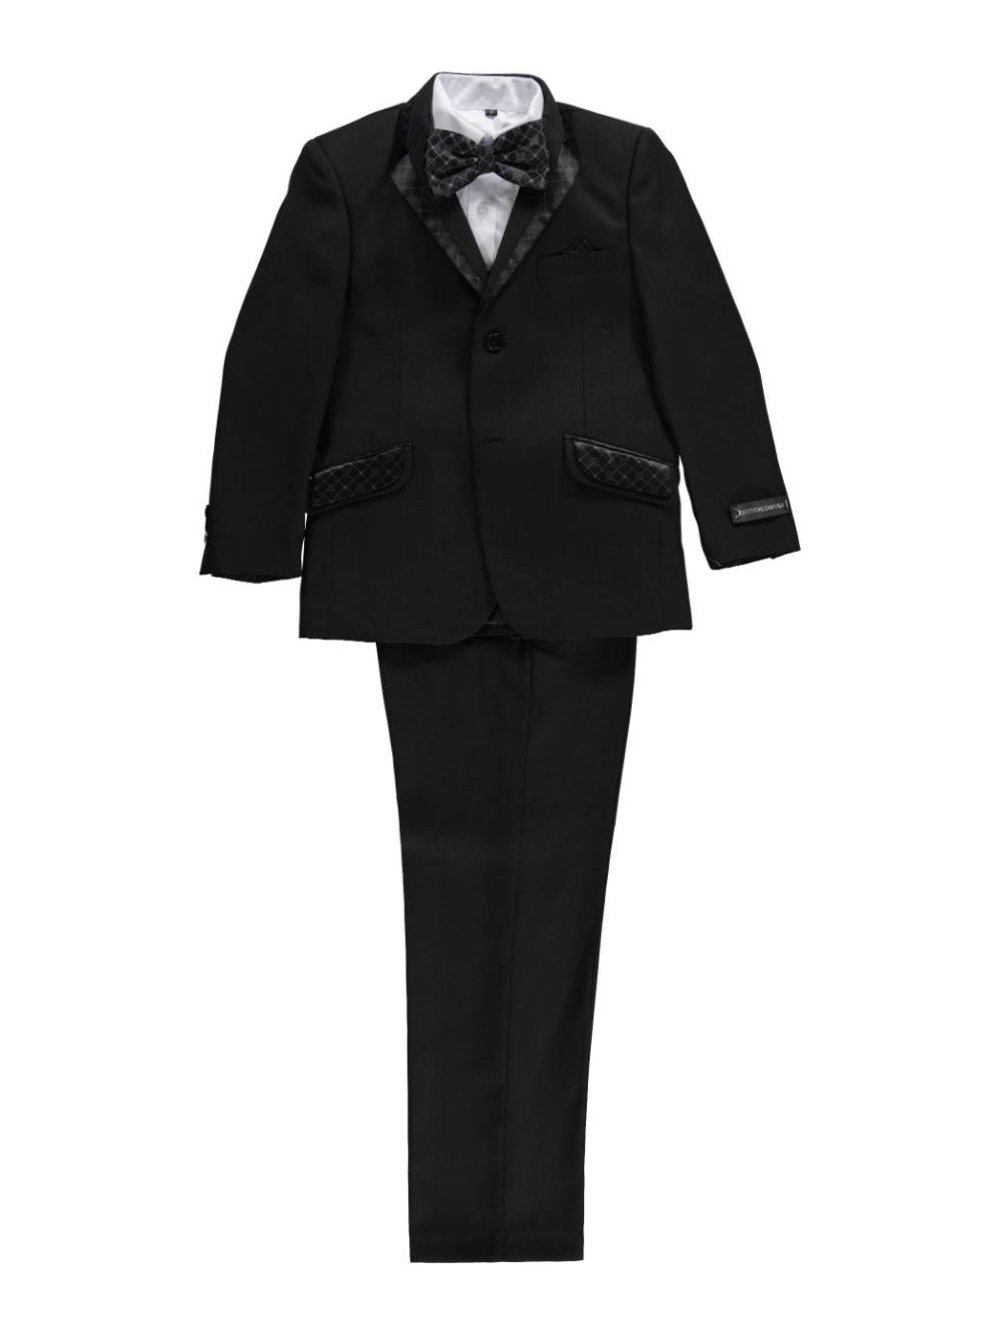 Kids World Big Boys' Ginsome 5-Piece Suit - Black, 20